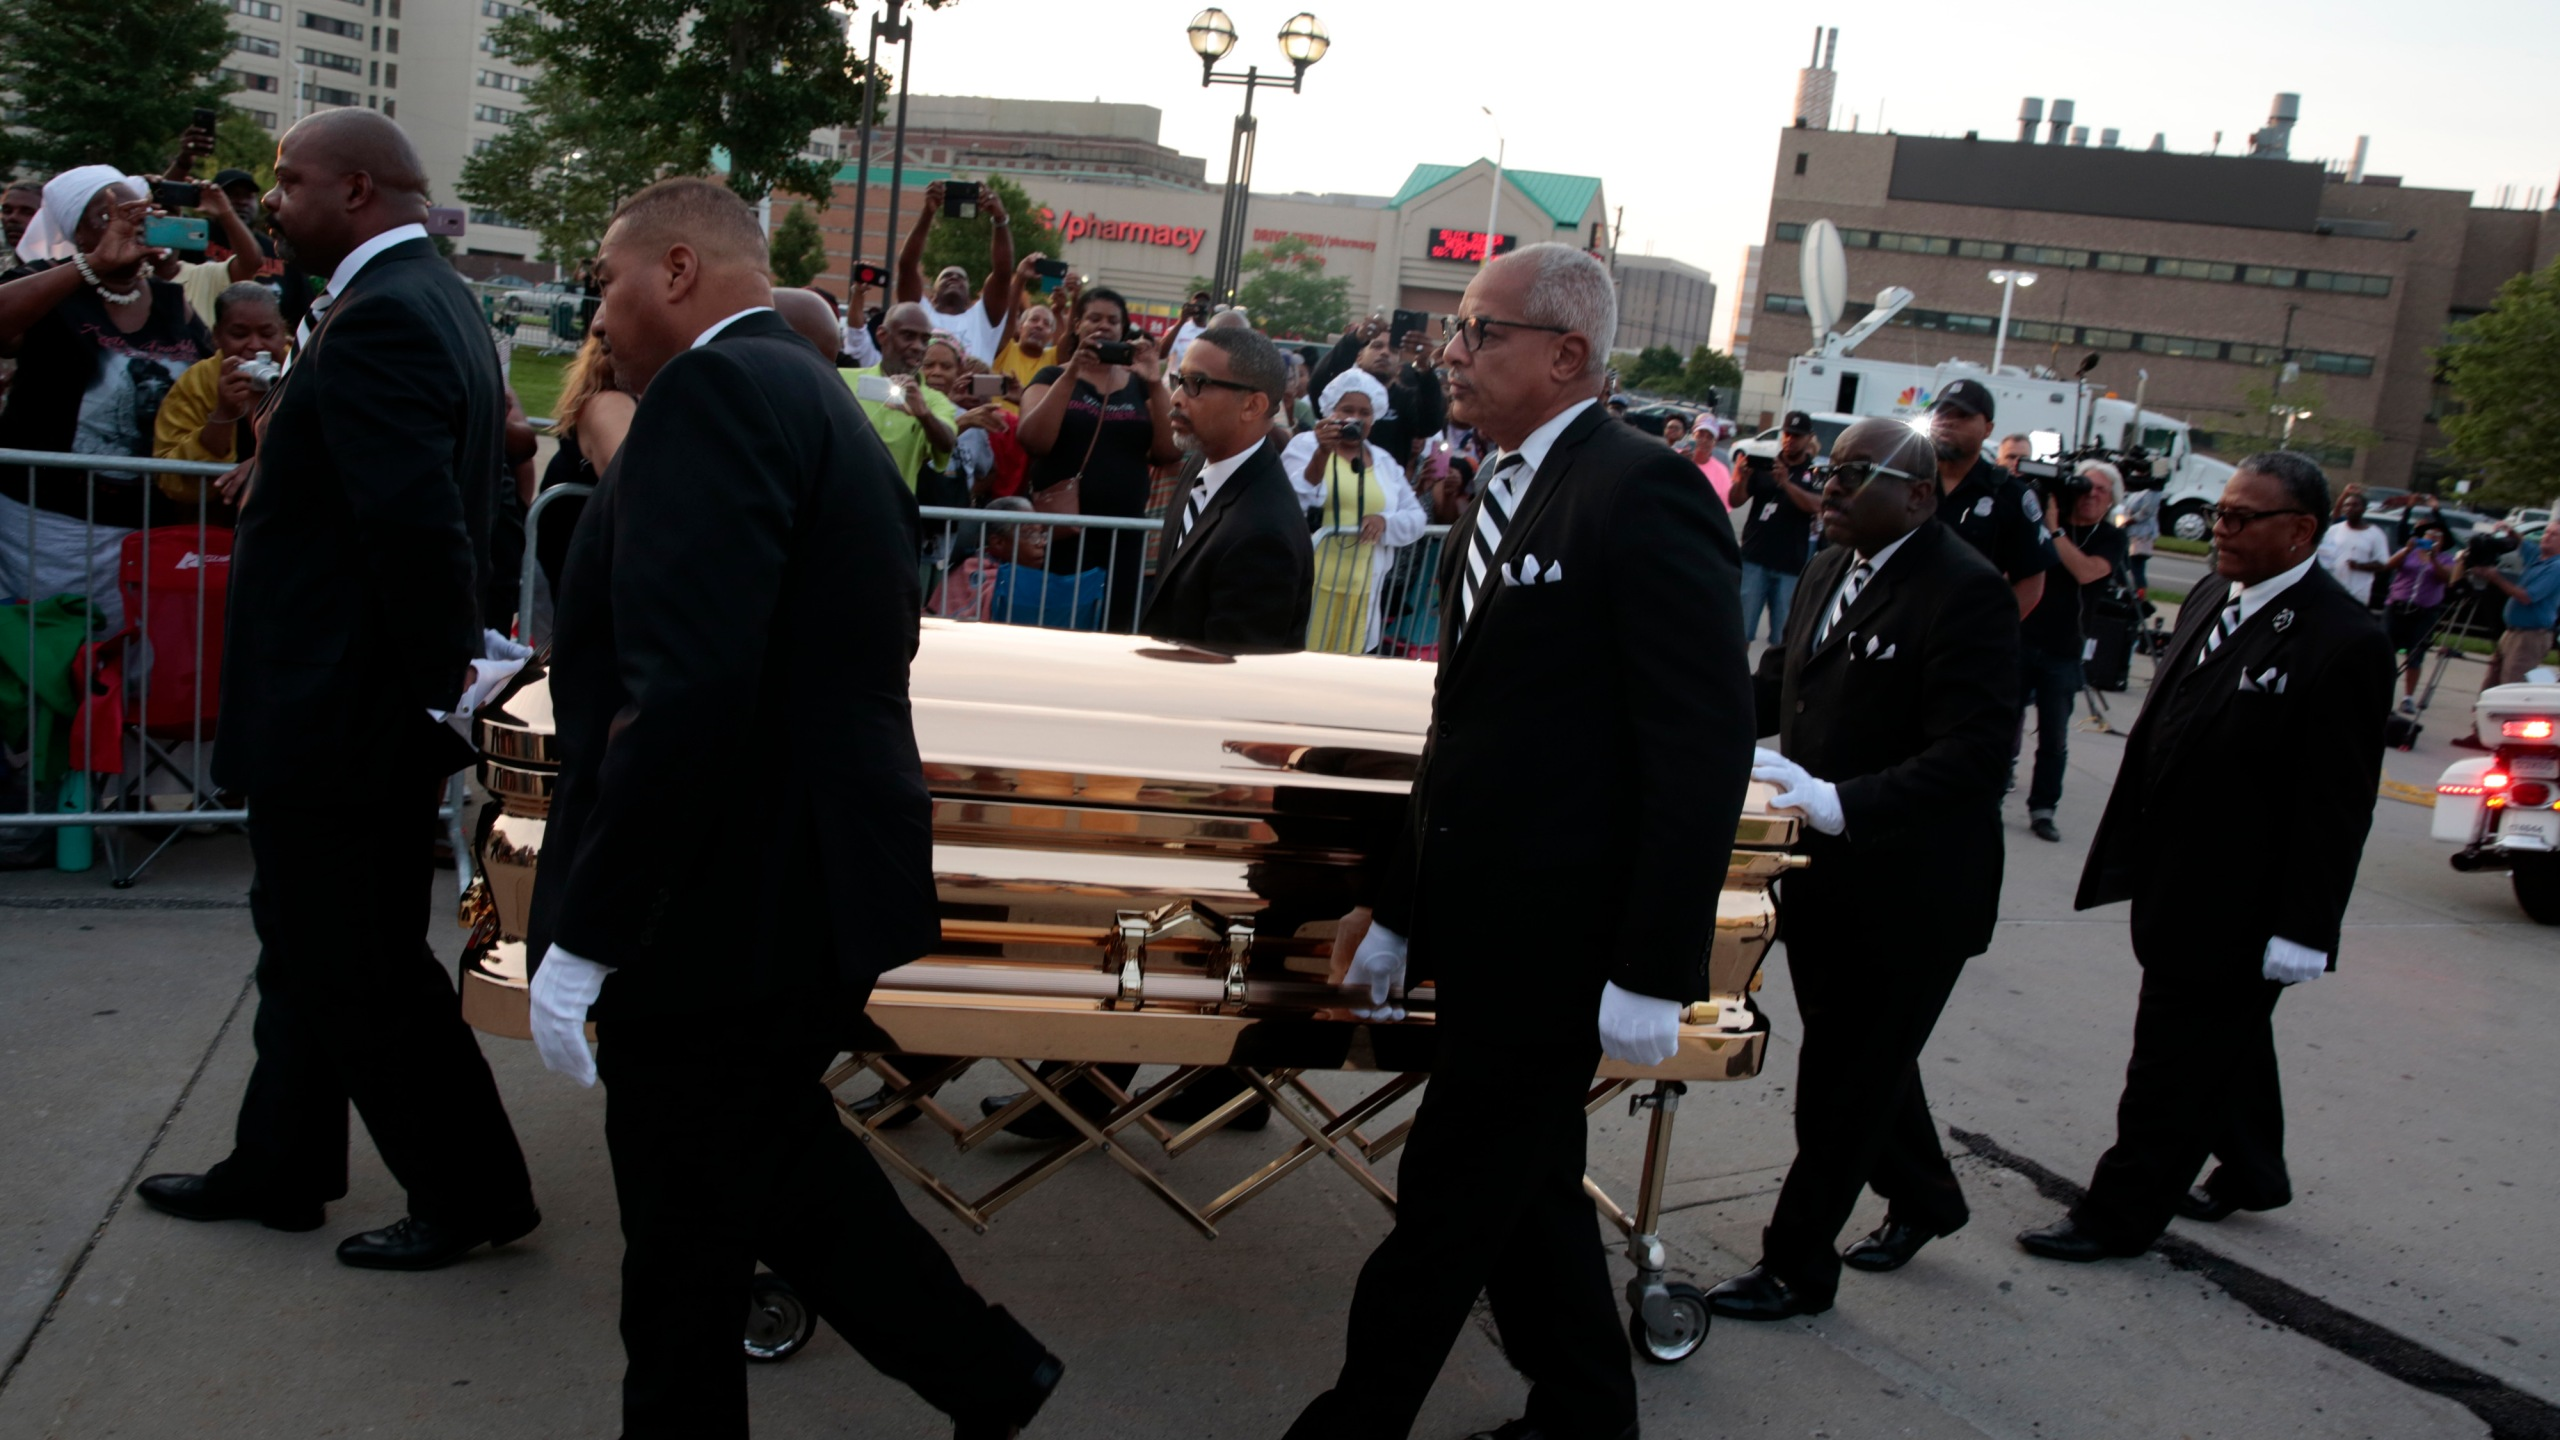 The casket of late Aretha Franklin arrives at the Charles H. Wright Museum of African American History in Detroit for a viewing on Aug. 28, 2018. (Credit: Jeff Kowalsky/ AFP)